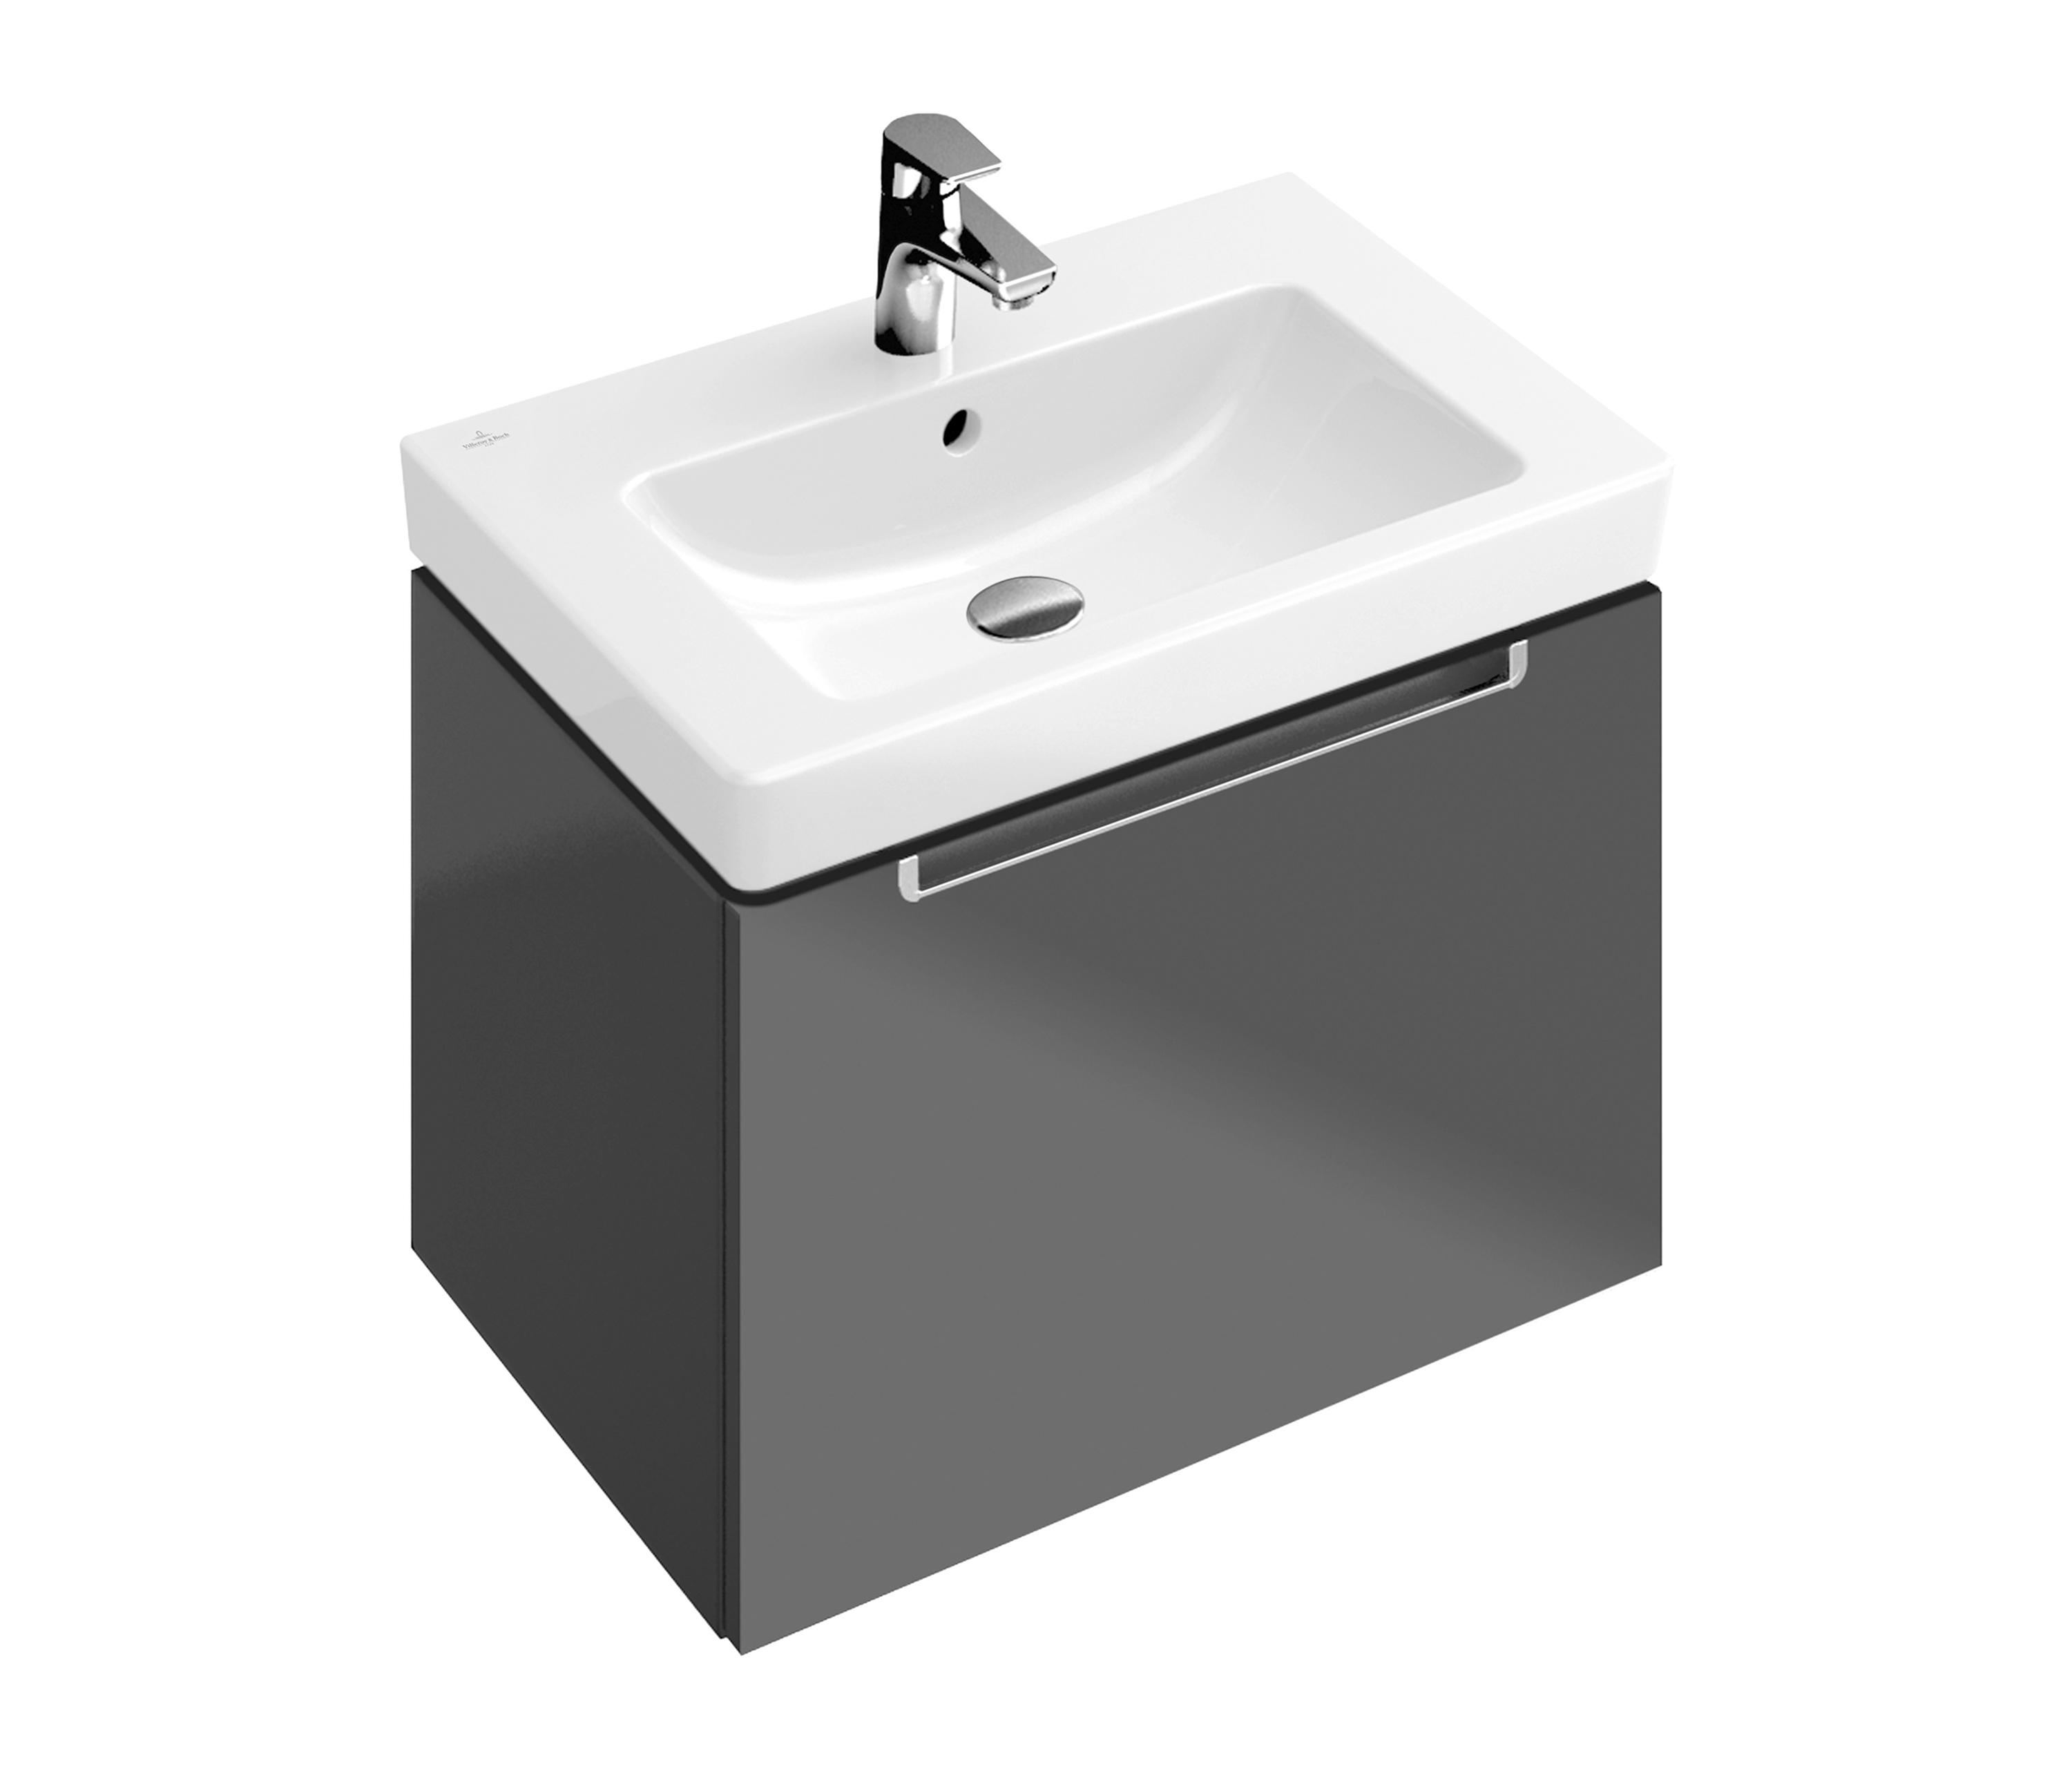 subway 2 0 washbasin wash basins from villeroy boch. Black Bedroom Furniture Sets. Home Design Ideas